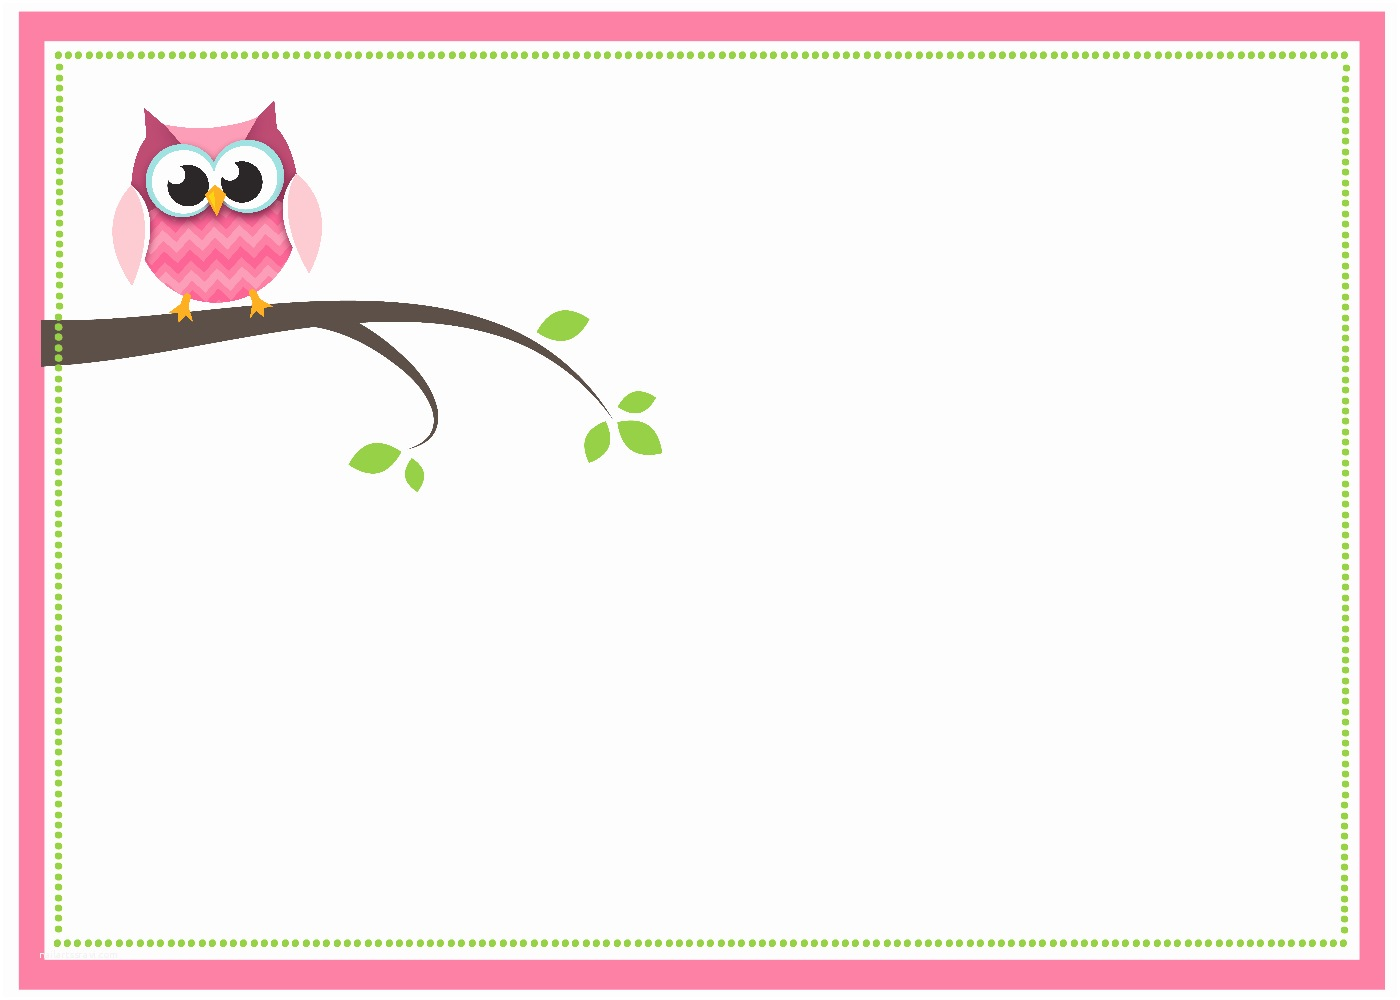 Owl Invitations for Baby Shower Free Printable Owl Baby Shower Invitations & Other